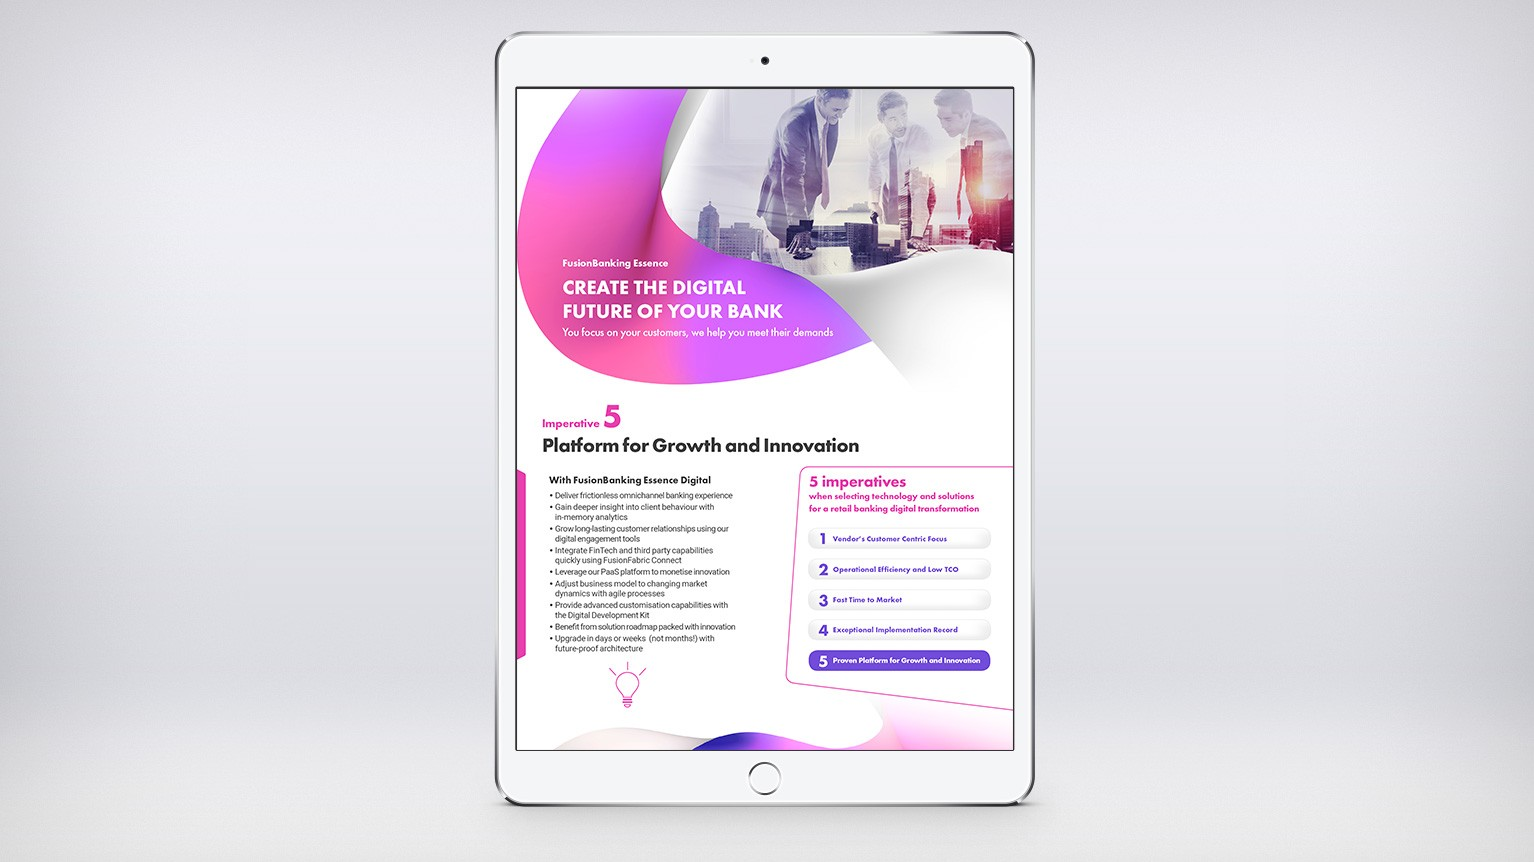 Finastra Digital - Platform for Growth and Innovation Infographic